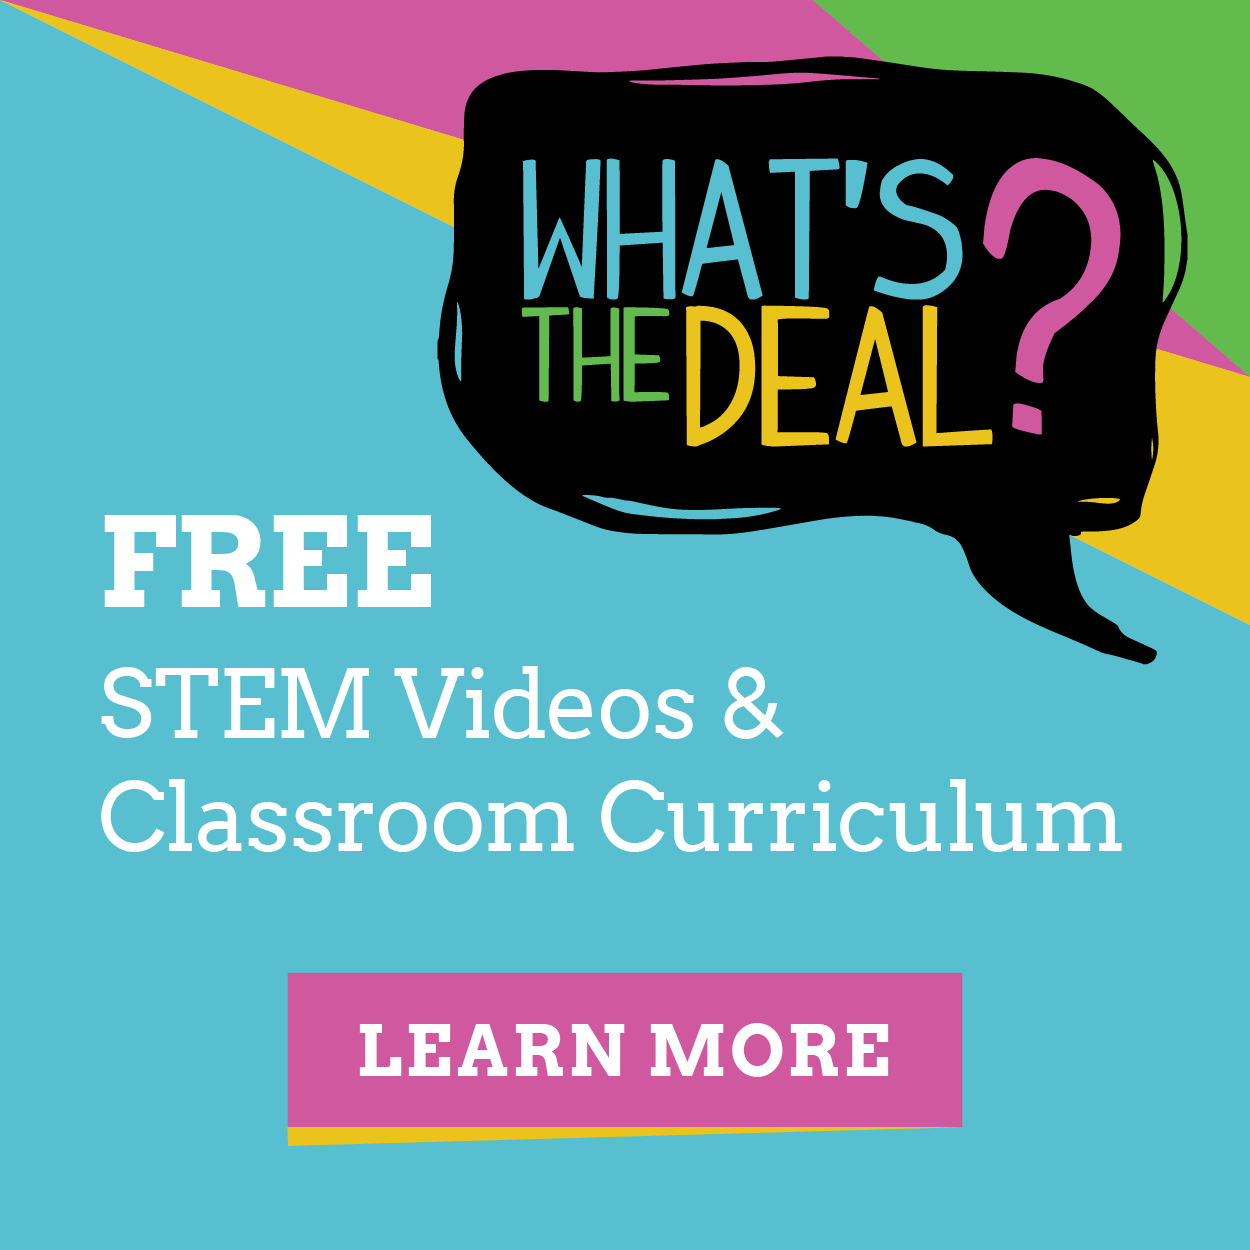 Download FREE STEM Curriculum from OETA.